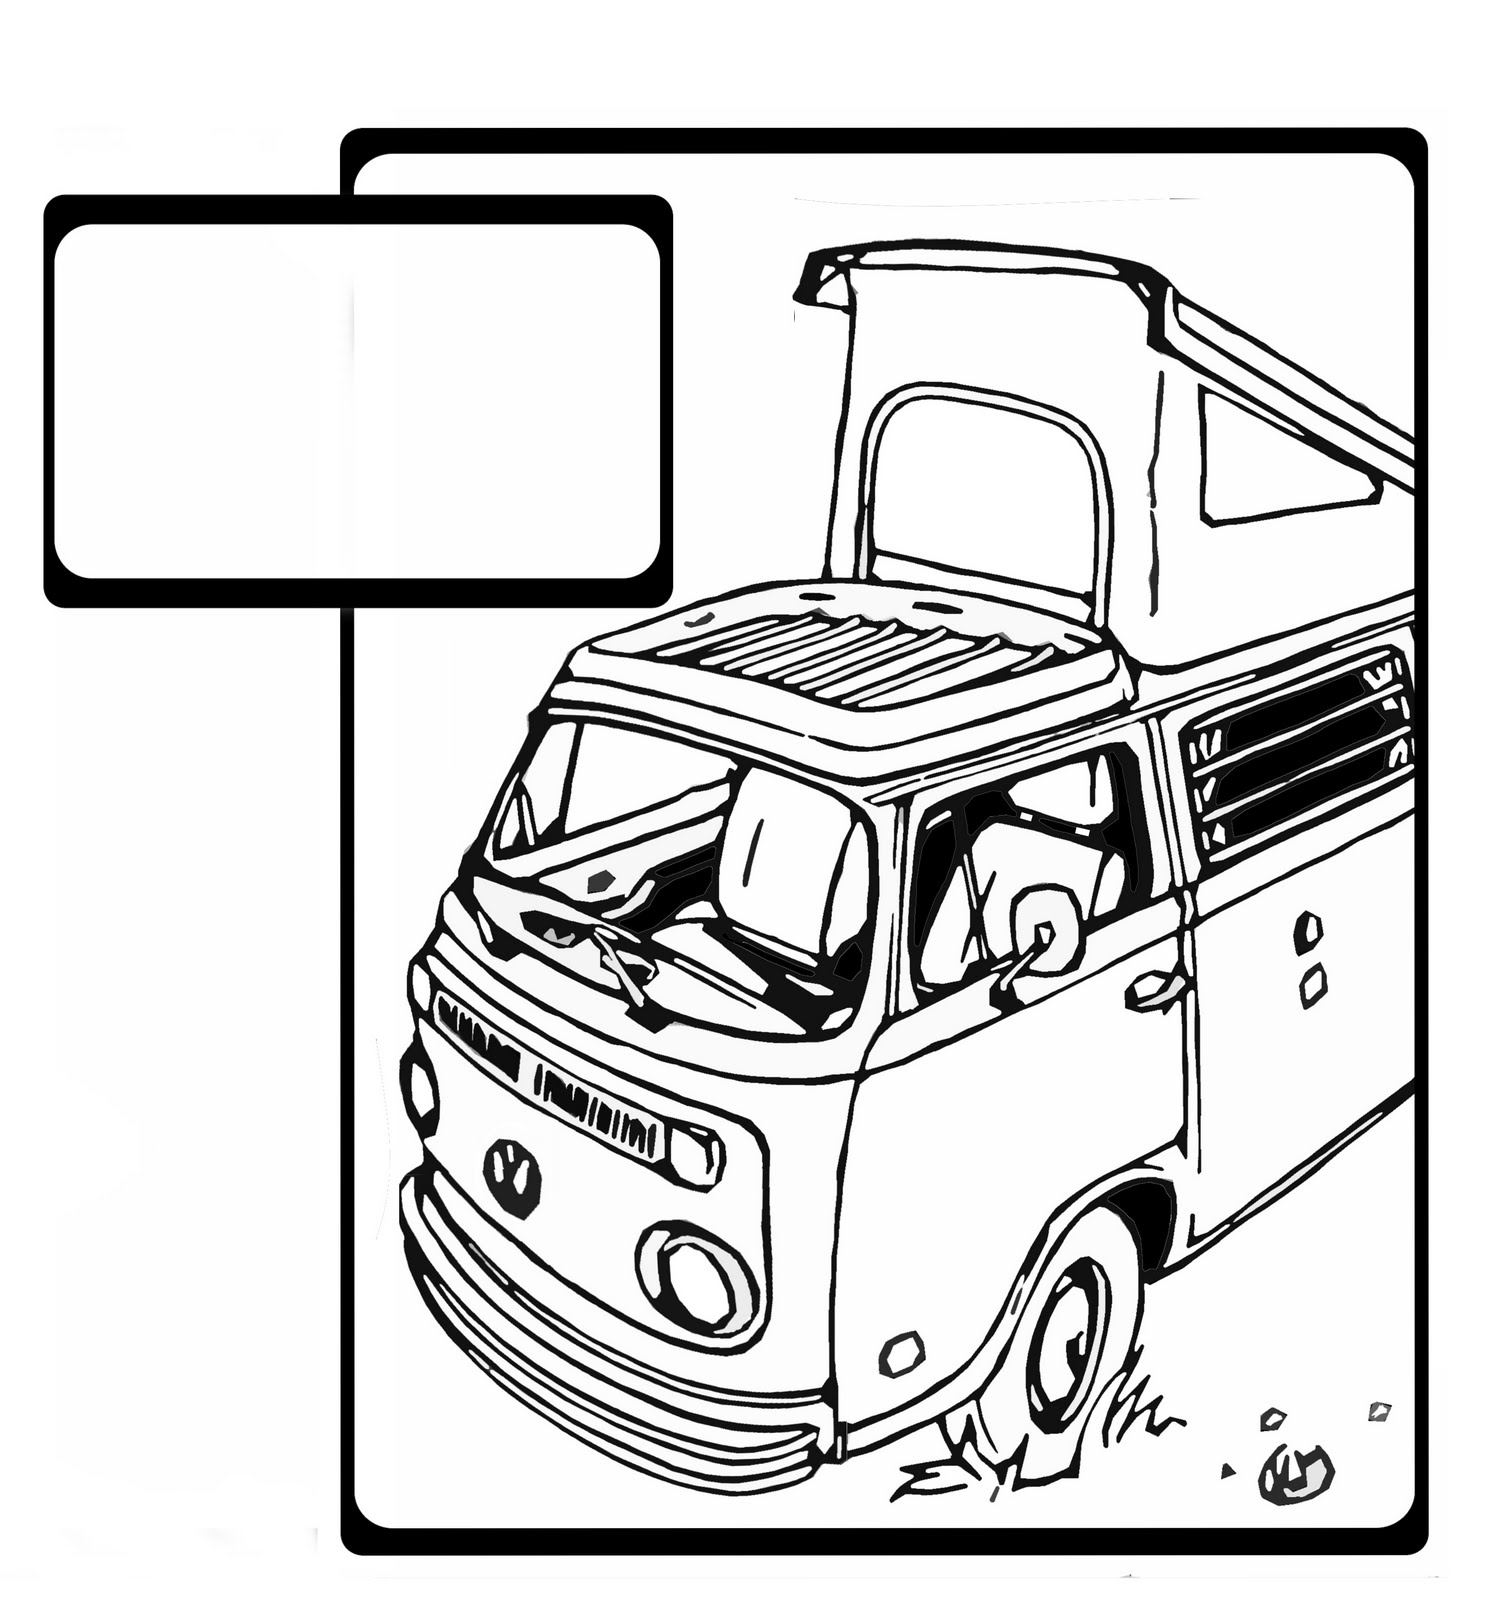 how to draw a volkswagen bus volkswagen bus drawing at getdrawings free download volkswagen draw bus a to how